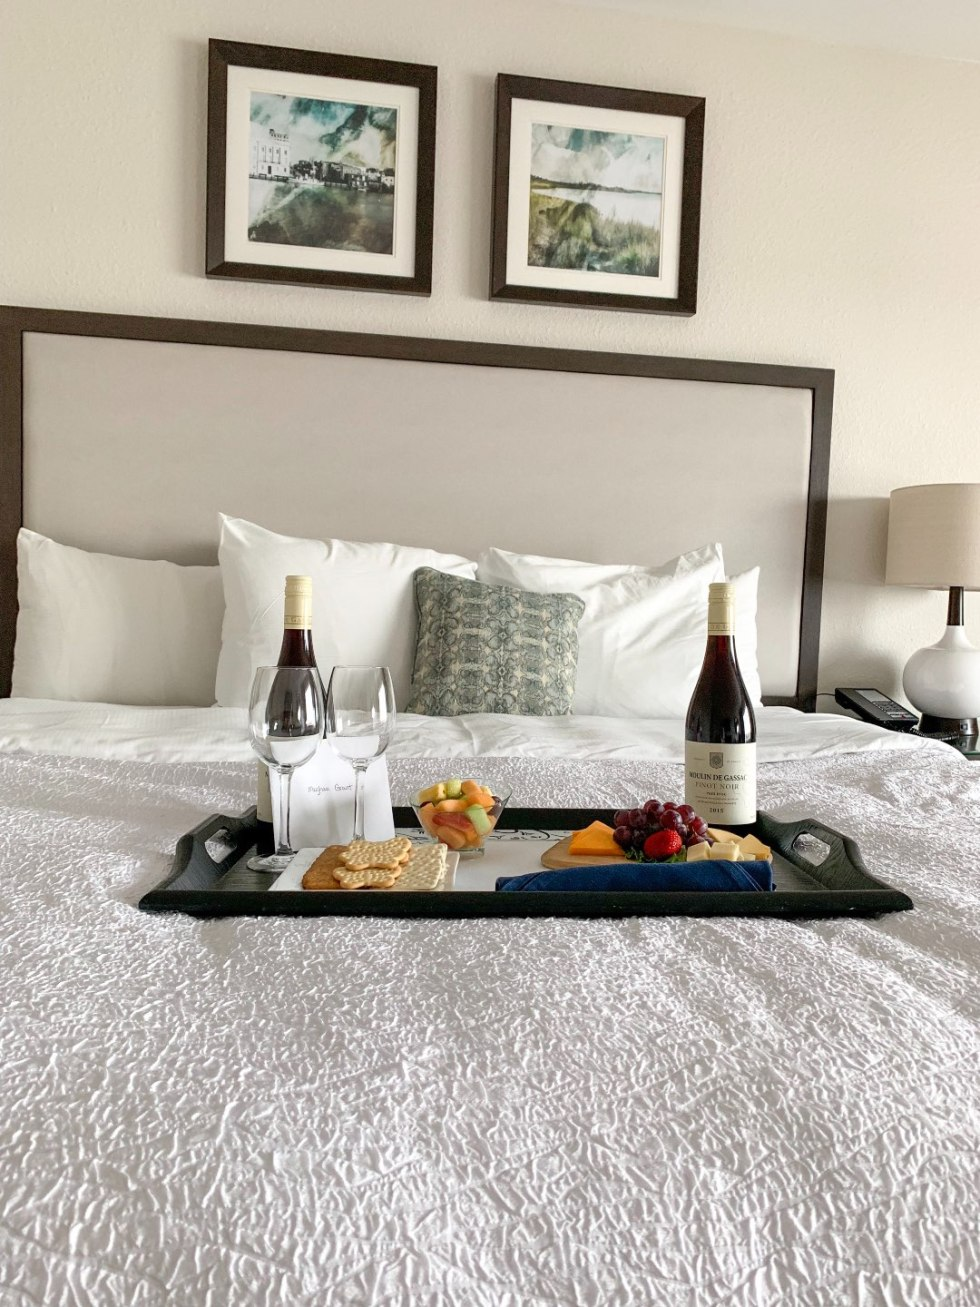 North Carolina Hotel: Hotel Ballast in Wilmington, NC - I'm FIxin' To - @mbg0112 | Hotel Ballast in Wilmington, NC review featured by top North Carolina travel blogm, I'm Fixin' To